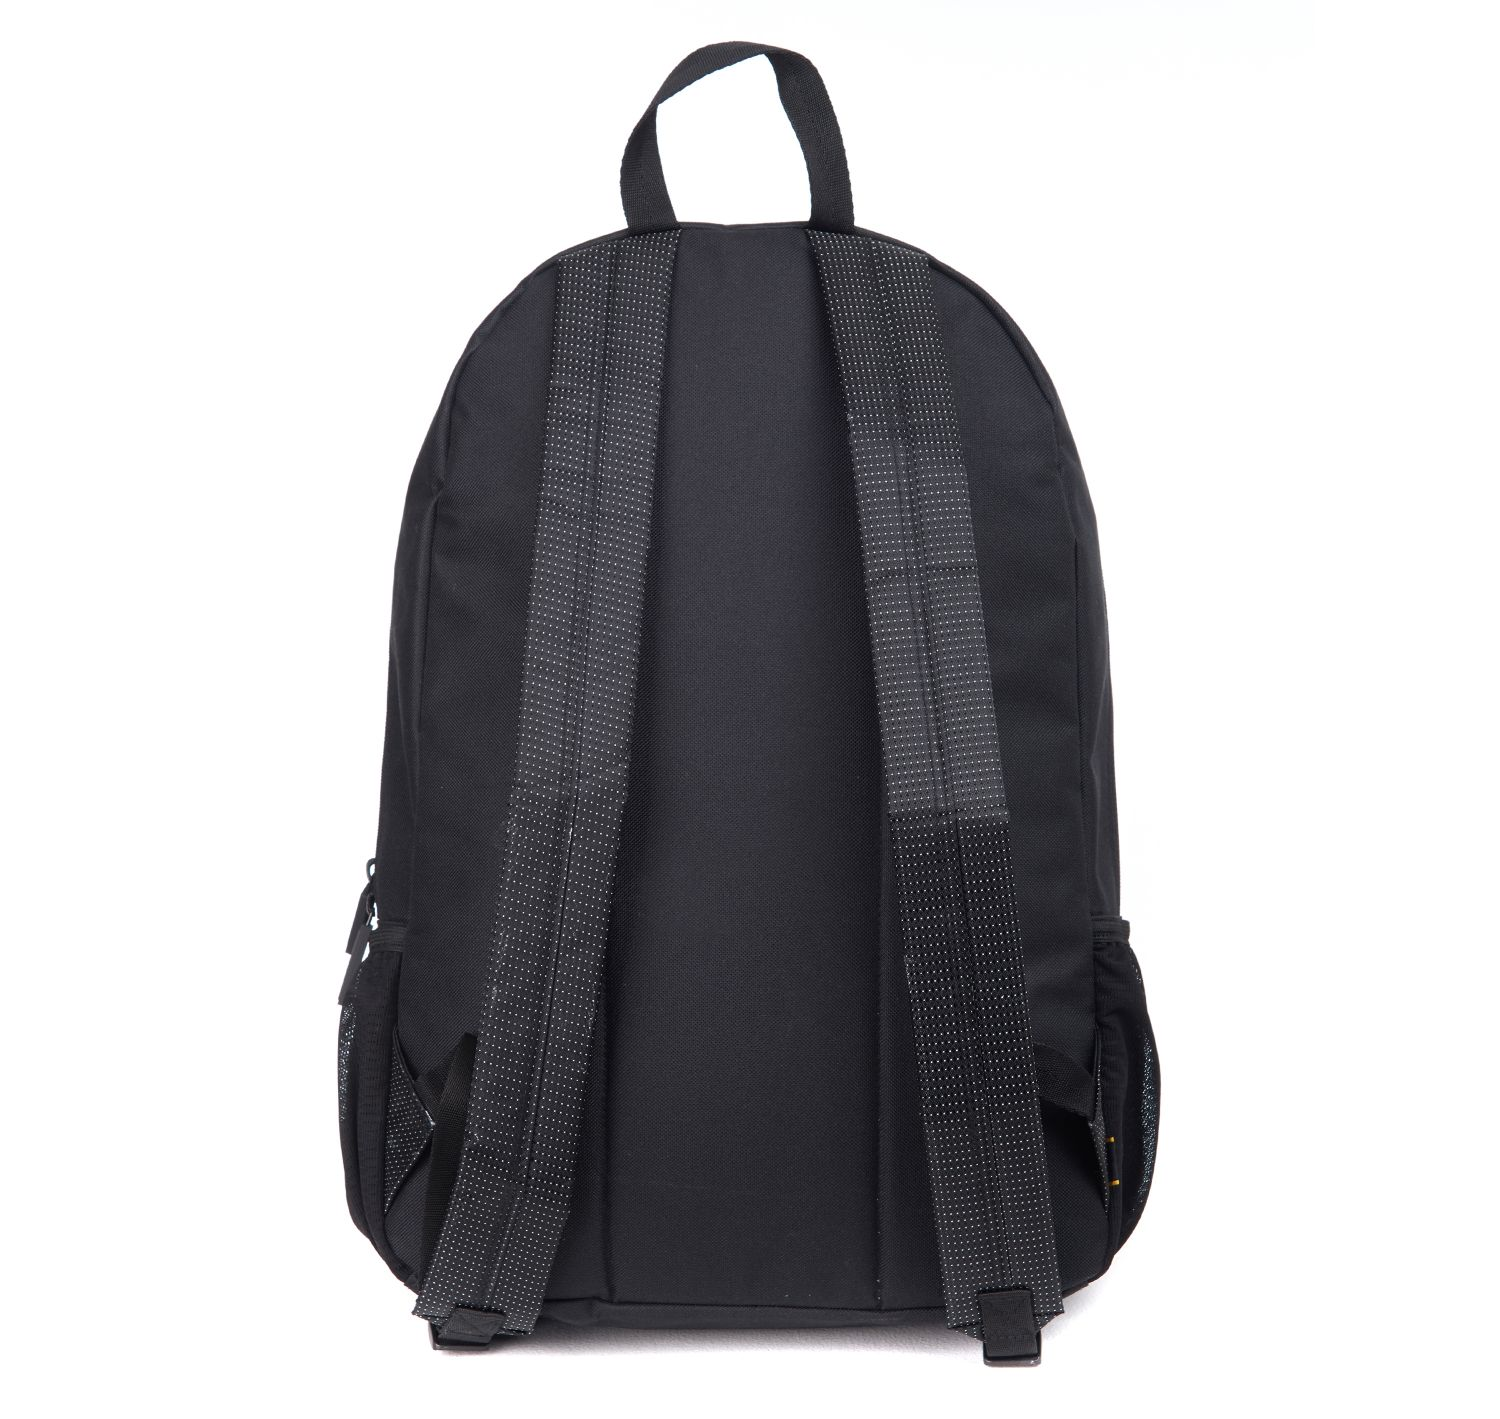 B.Intl Dock Backpack Black